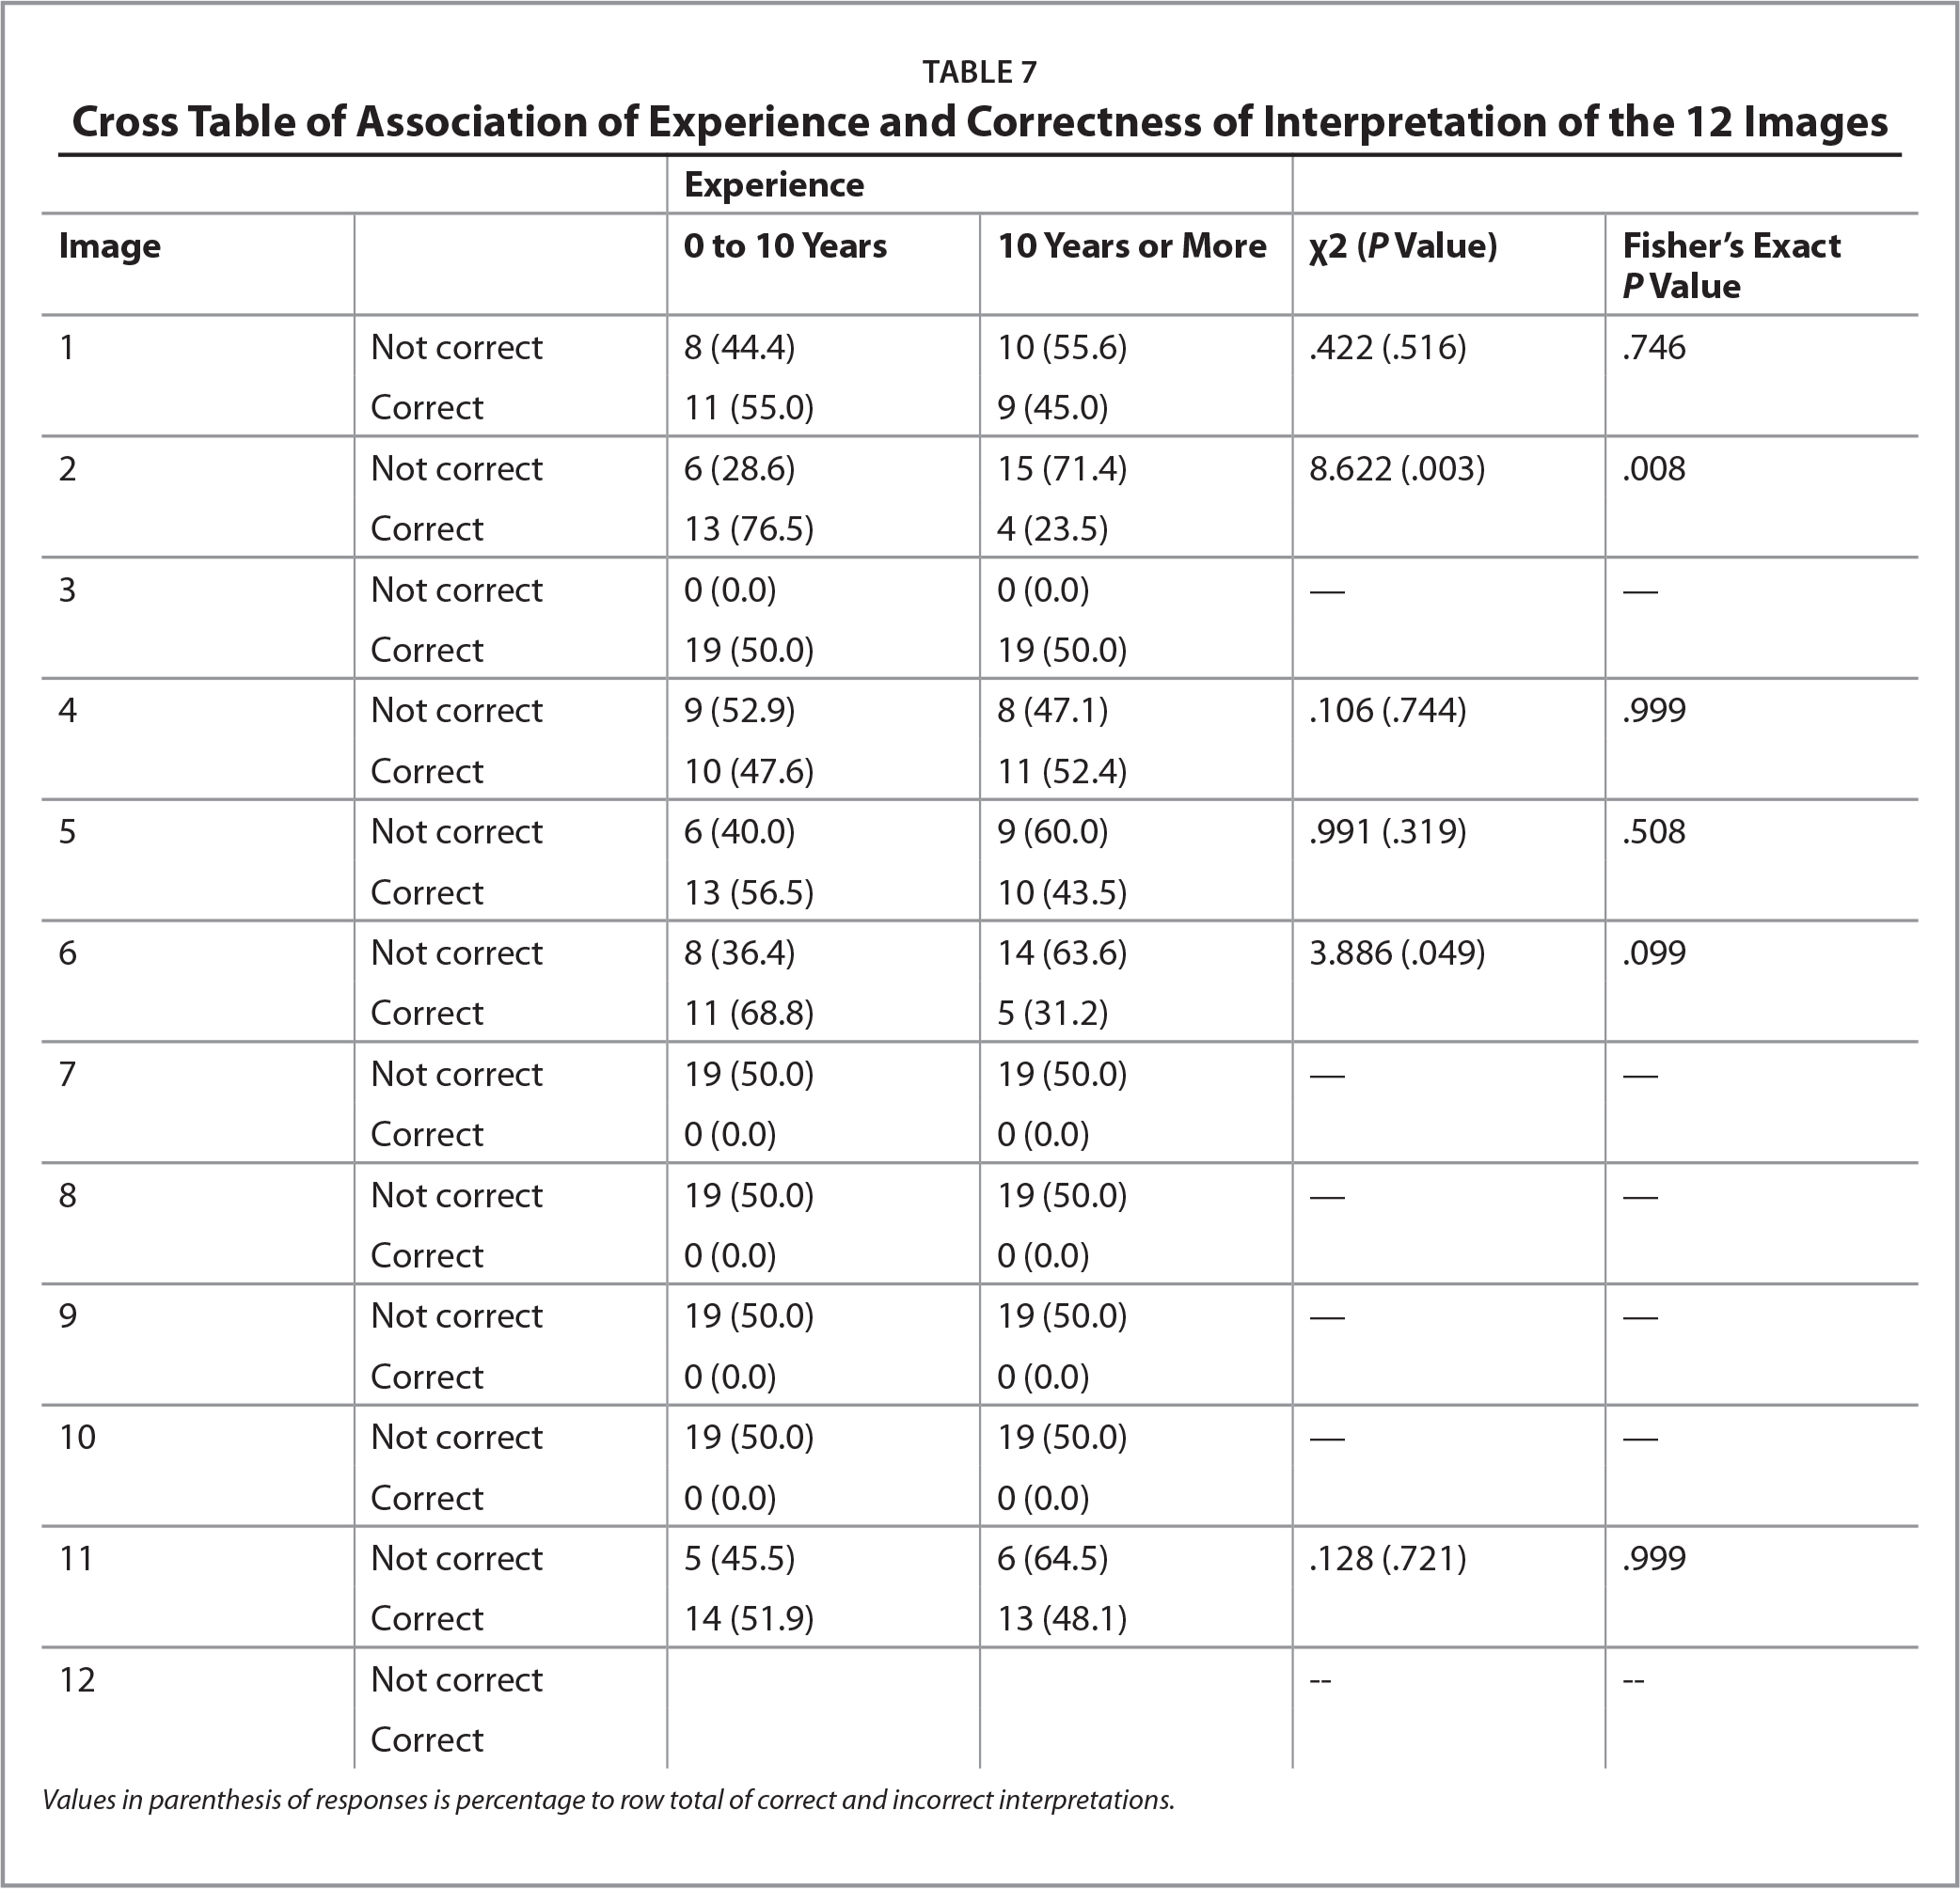 Cross Table of Association of Experience and Correctness of Interpretation of the 12 Images